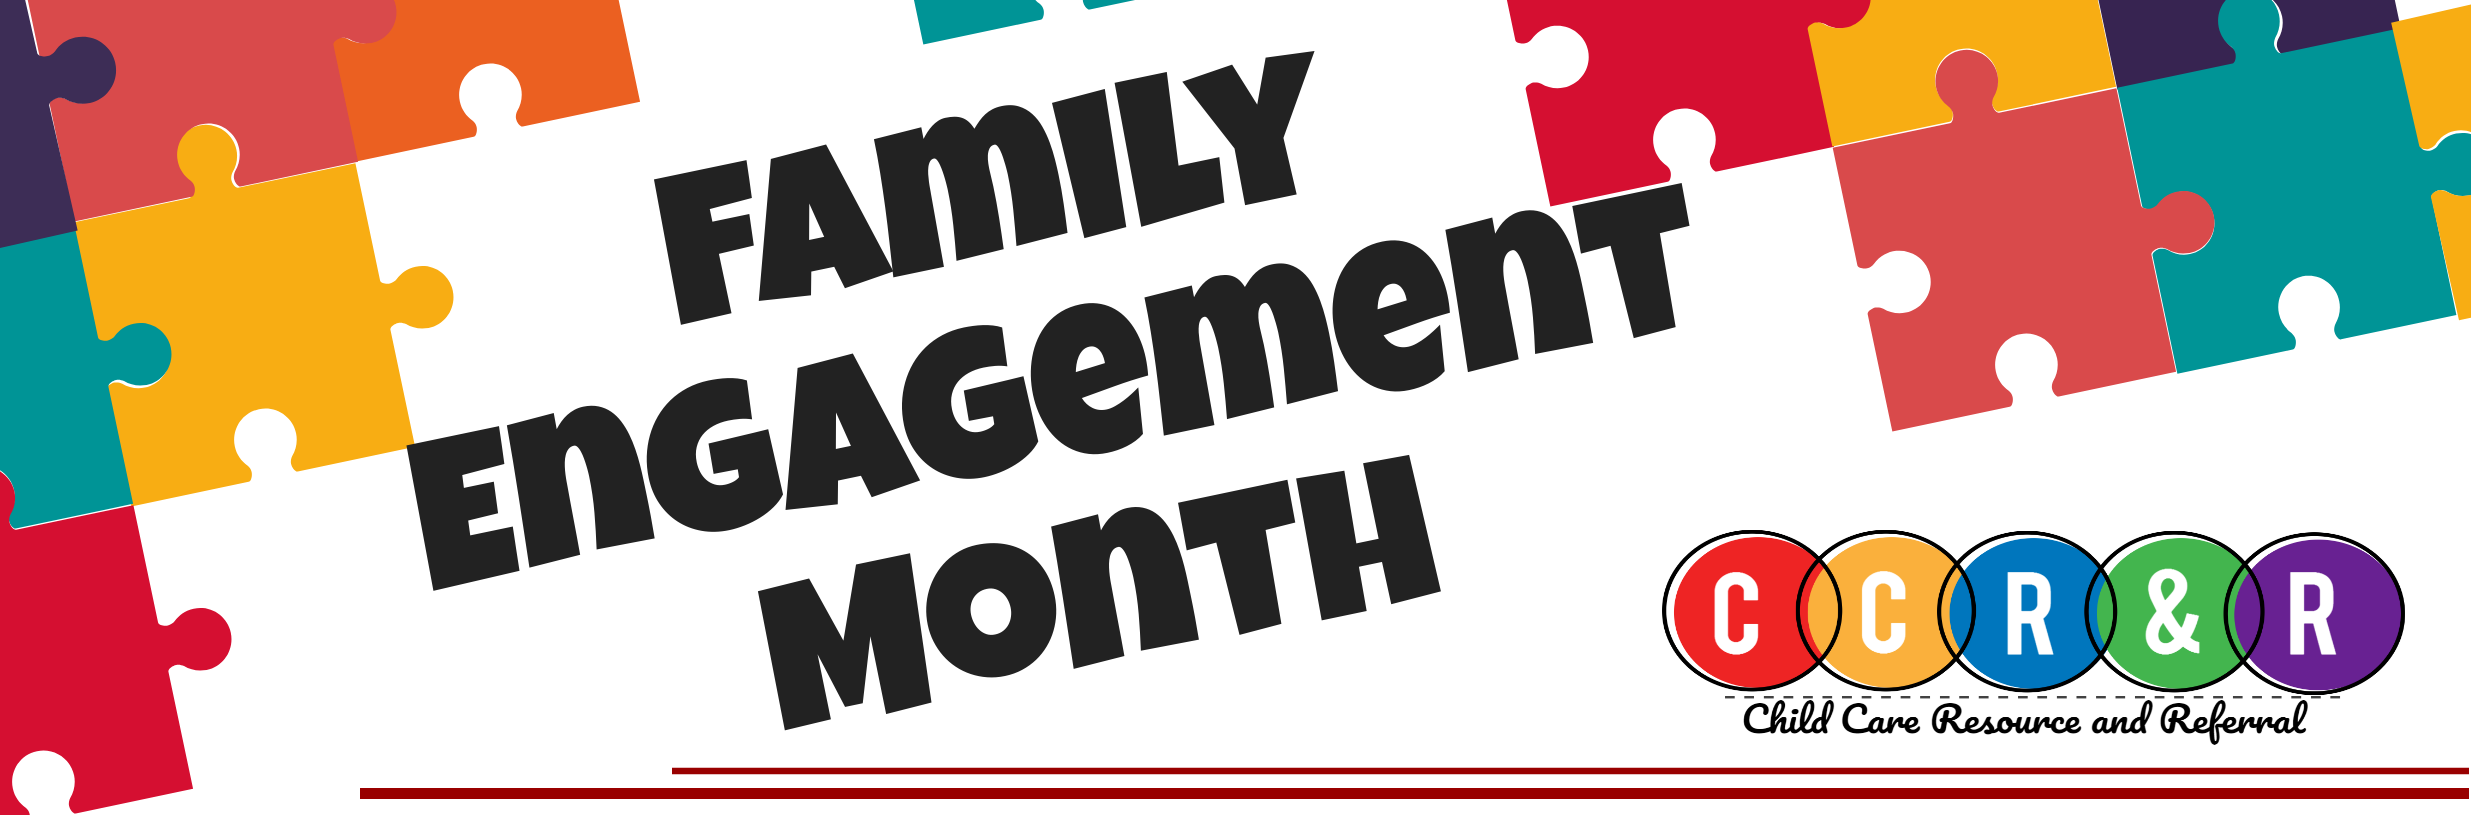 Family Engagement Month Header